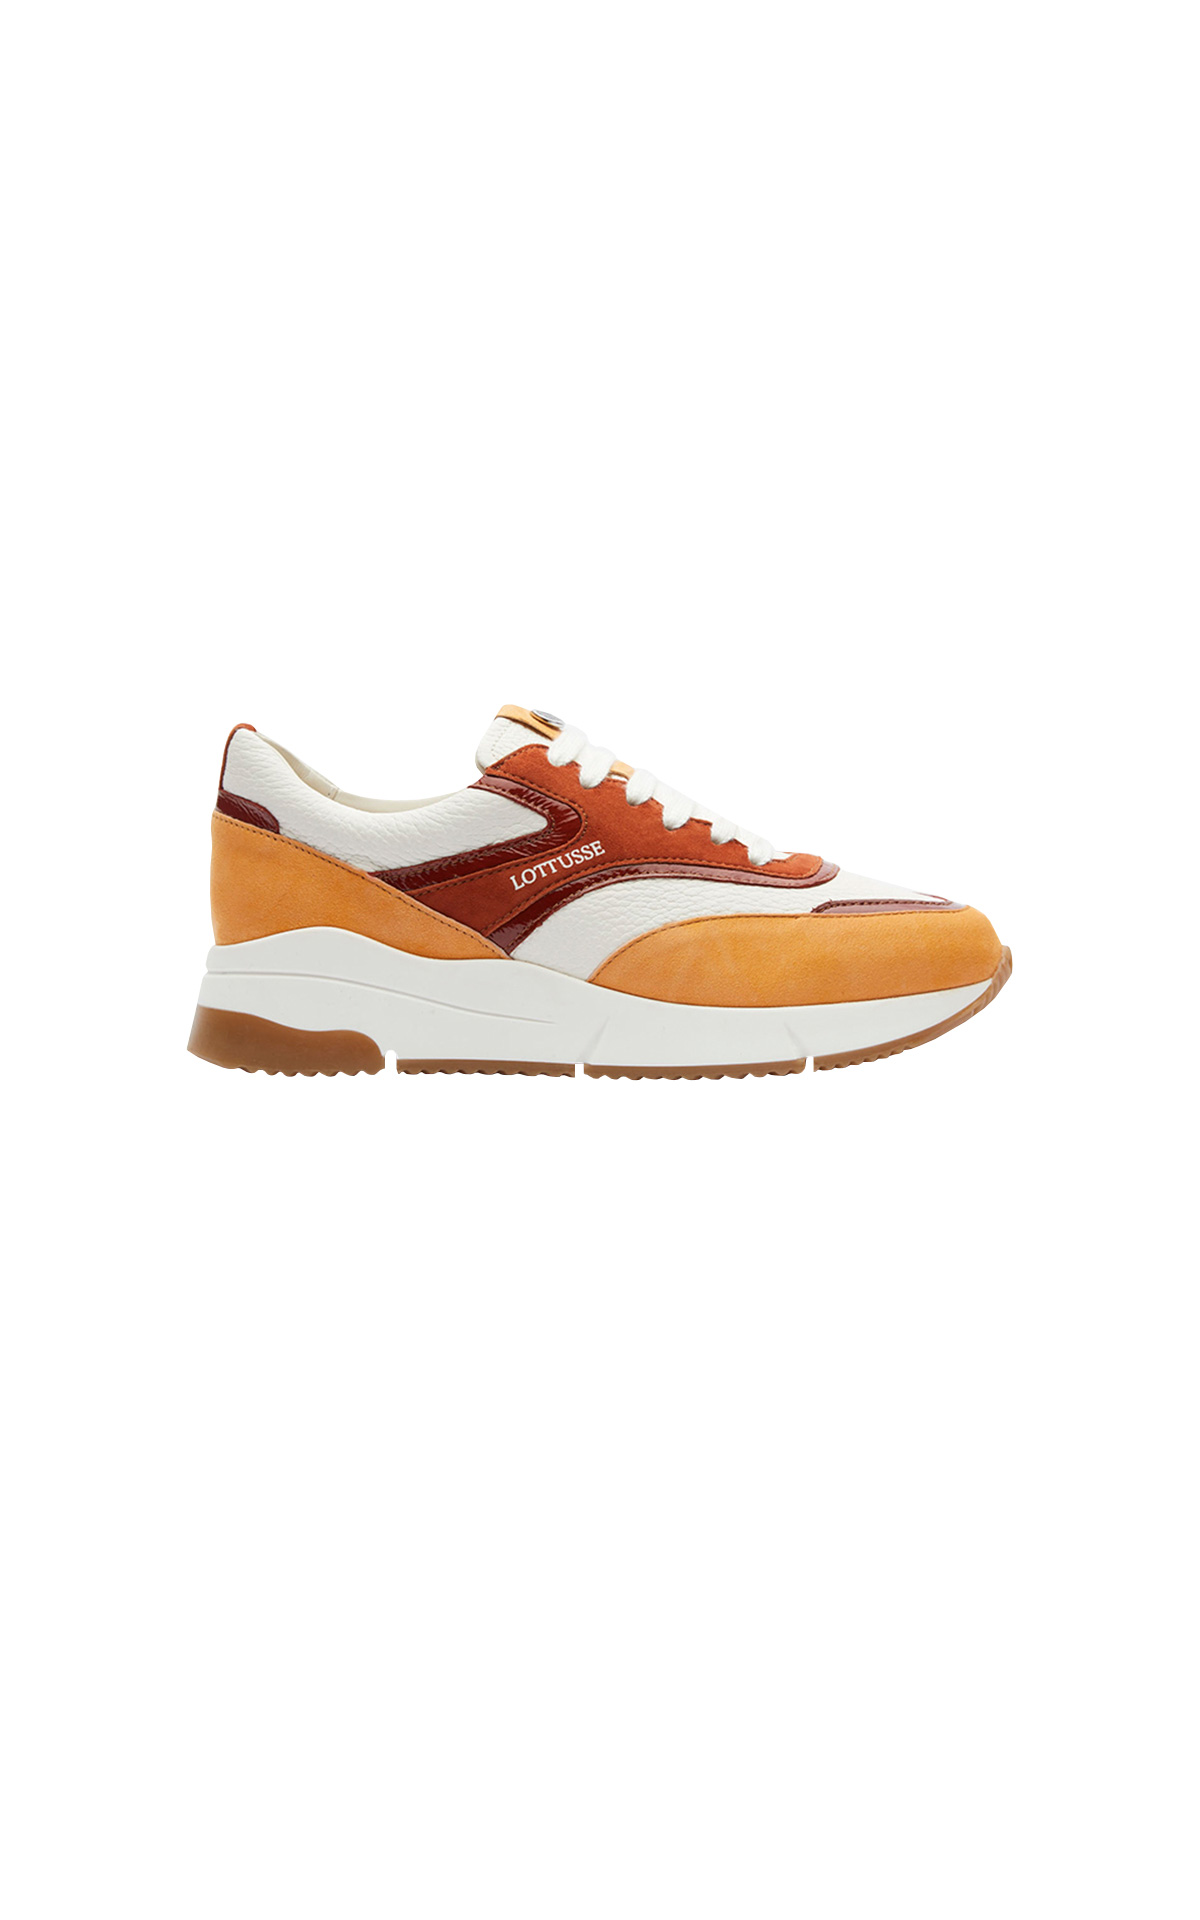 Orange and brown sneakers Lottusse